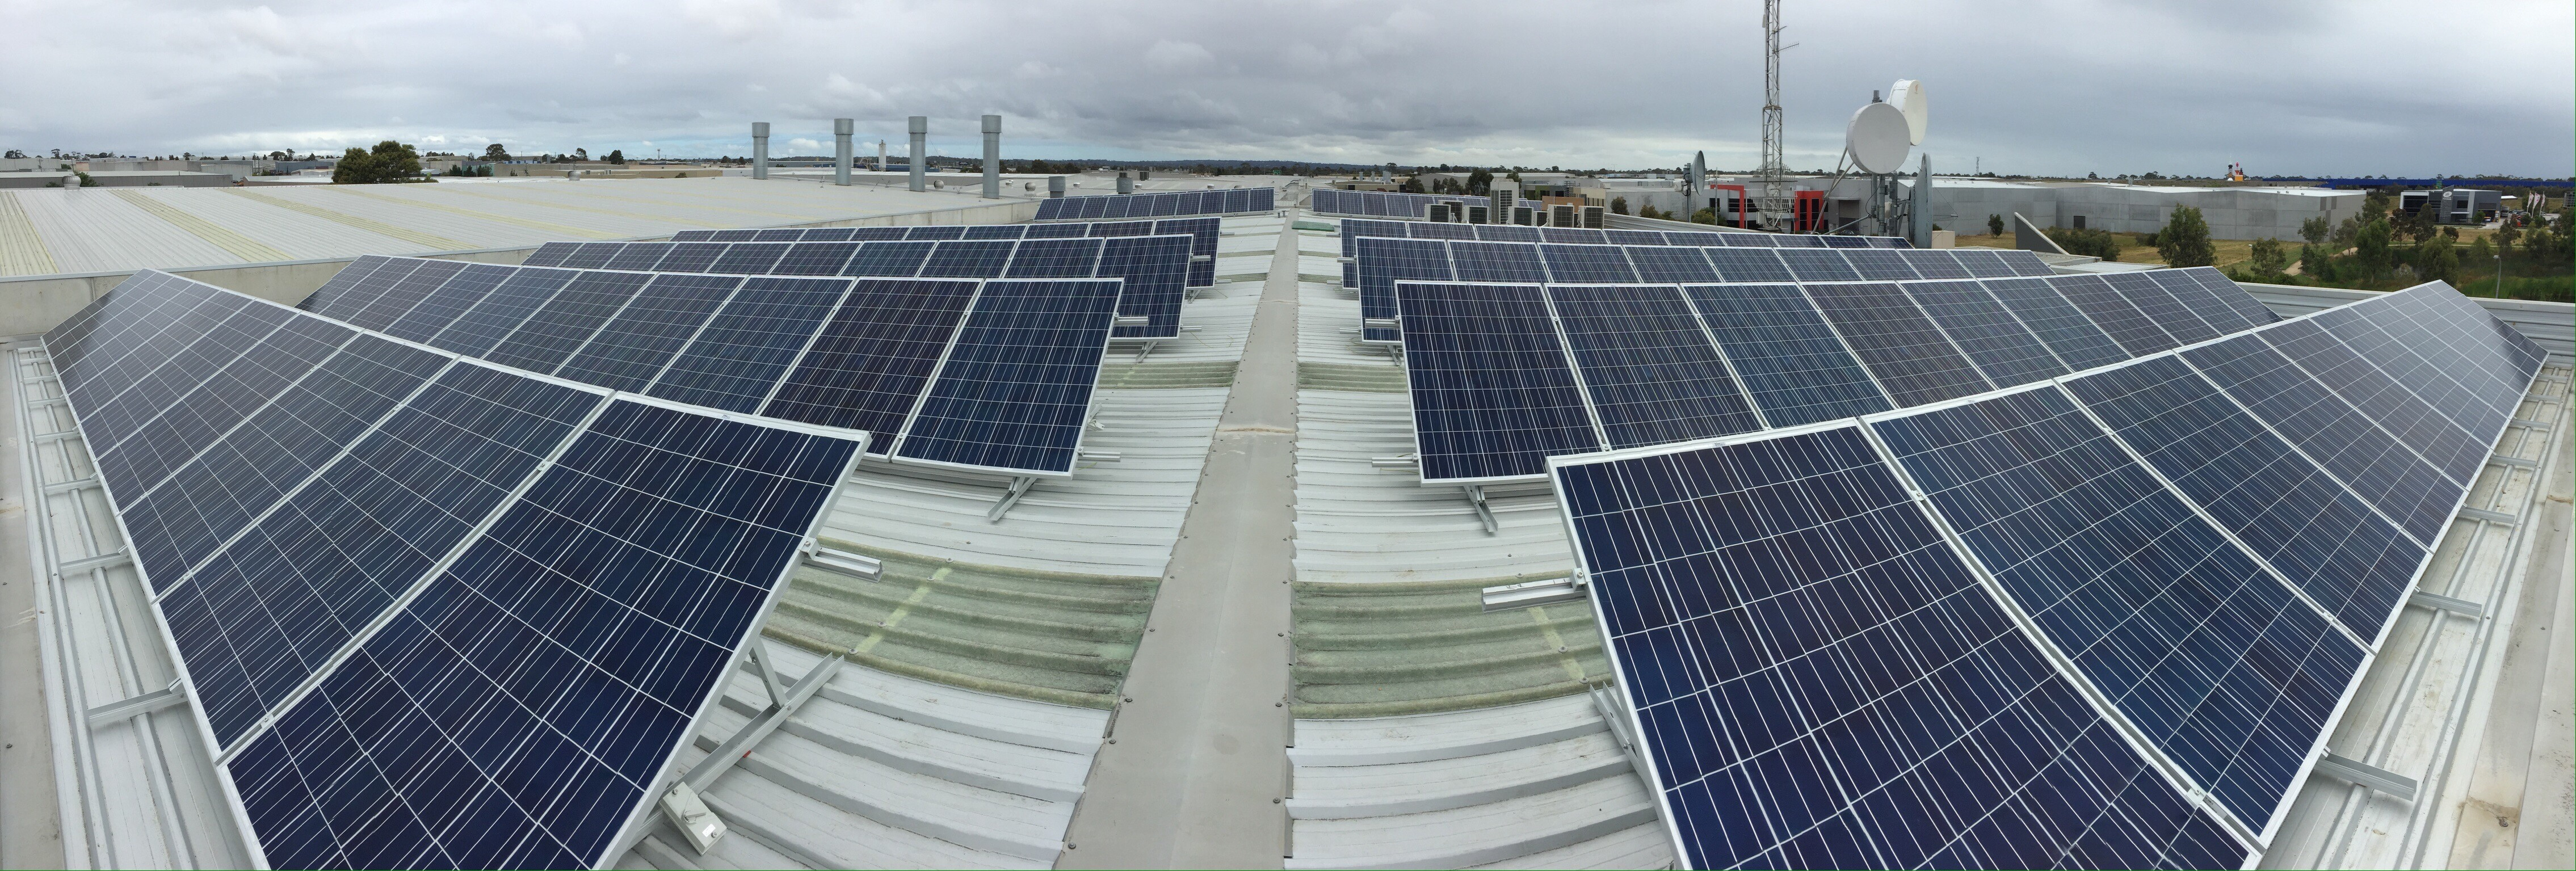 30kW commercial solar installations: Compare pricing, output